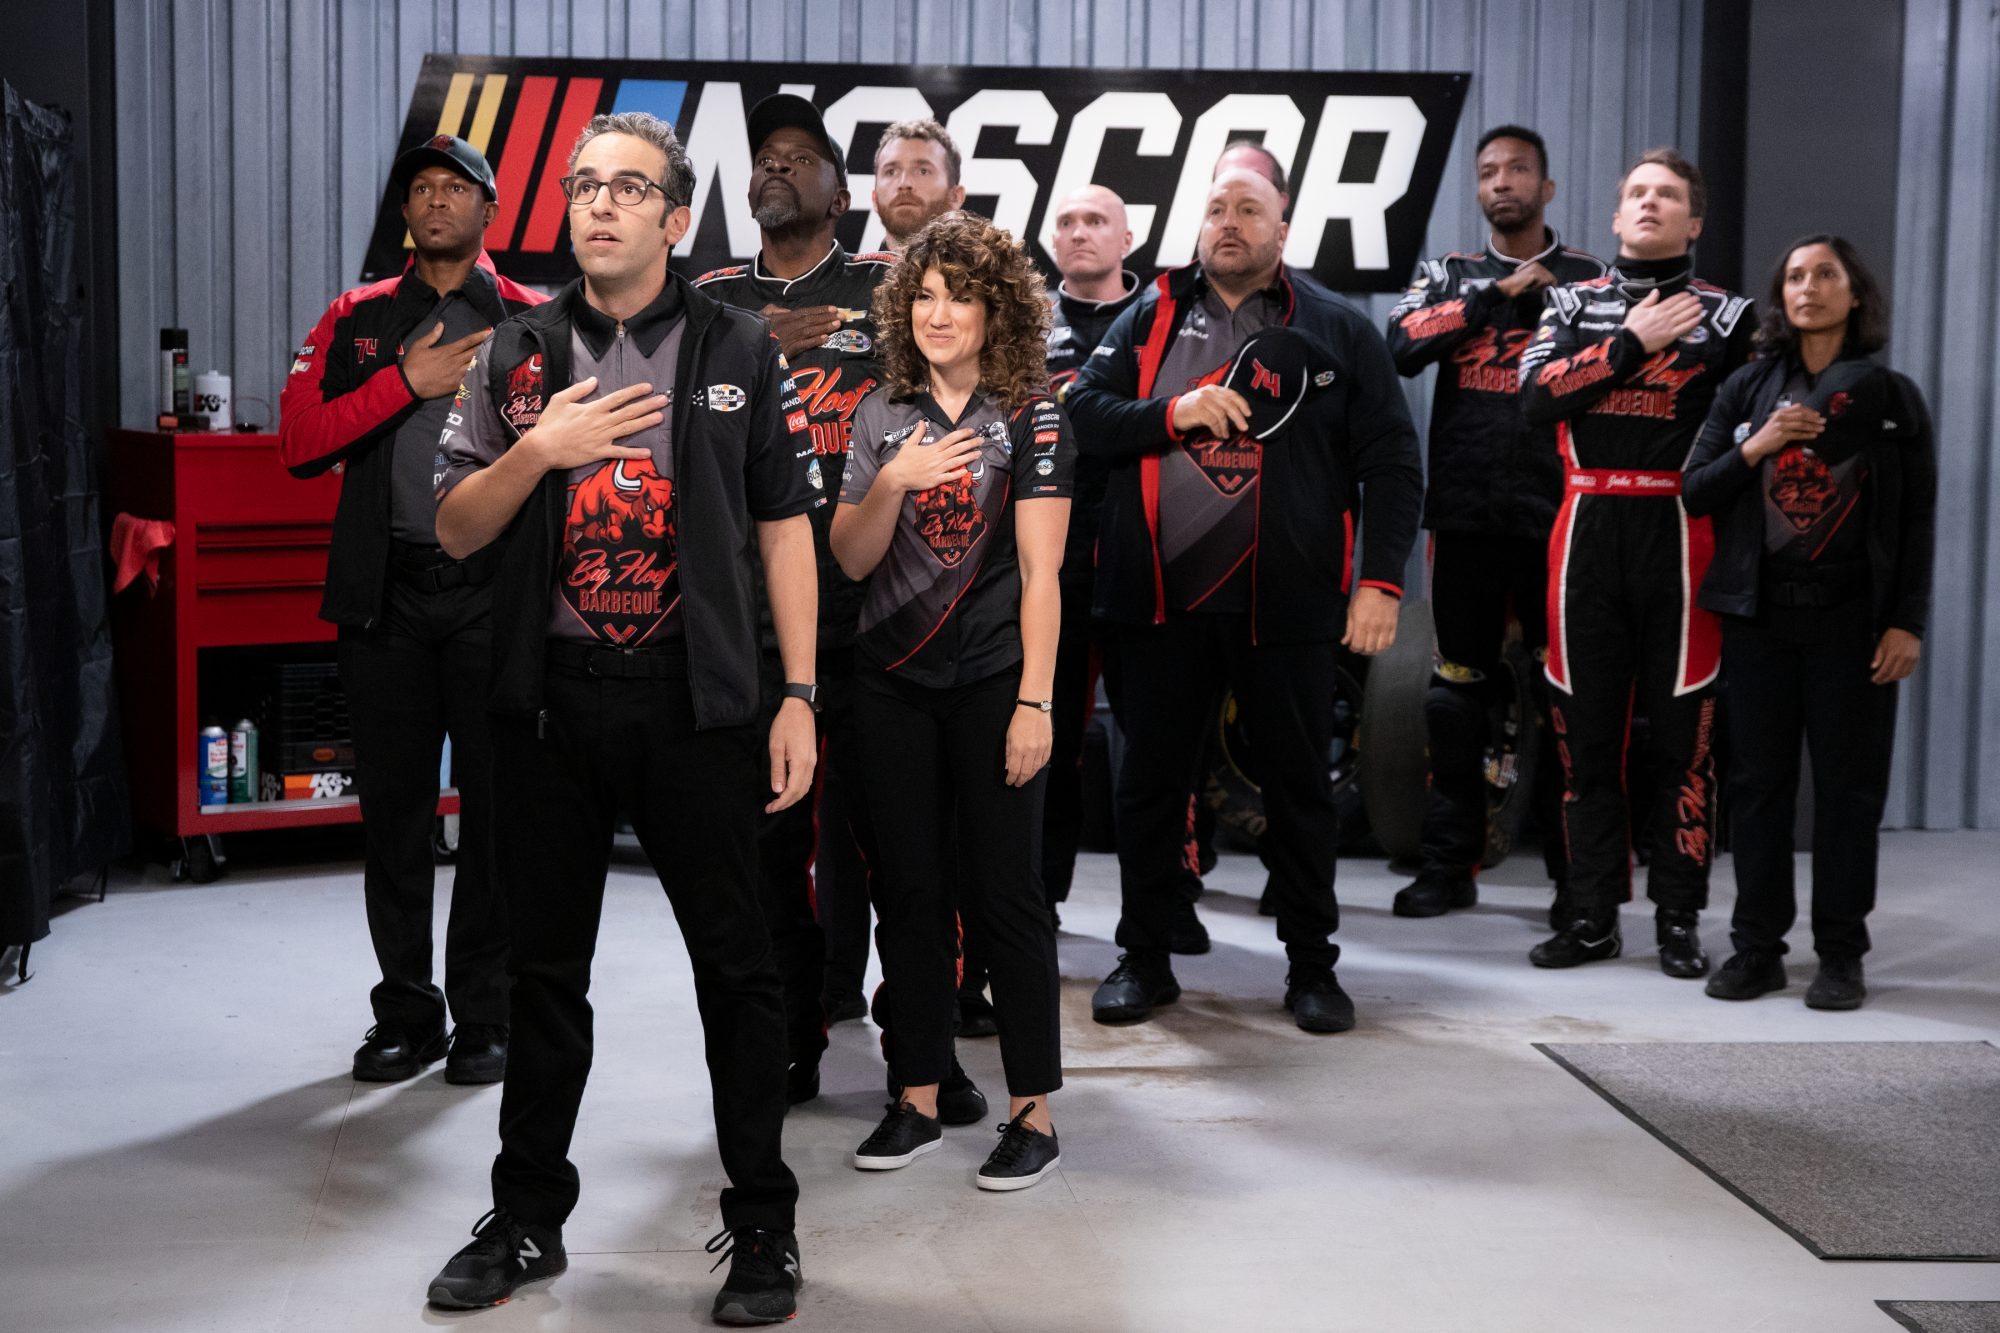 WATCH: Kevin James in Trailer for Netflix Sitcom The Crew   PEOPLE.com